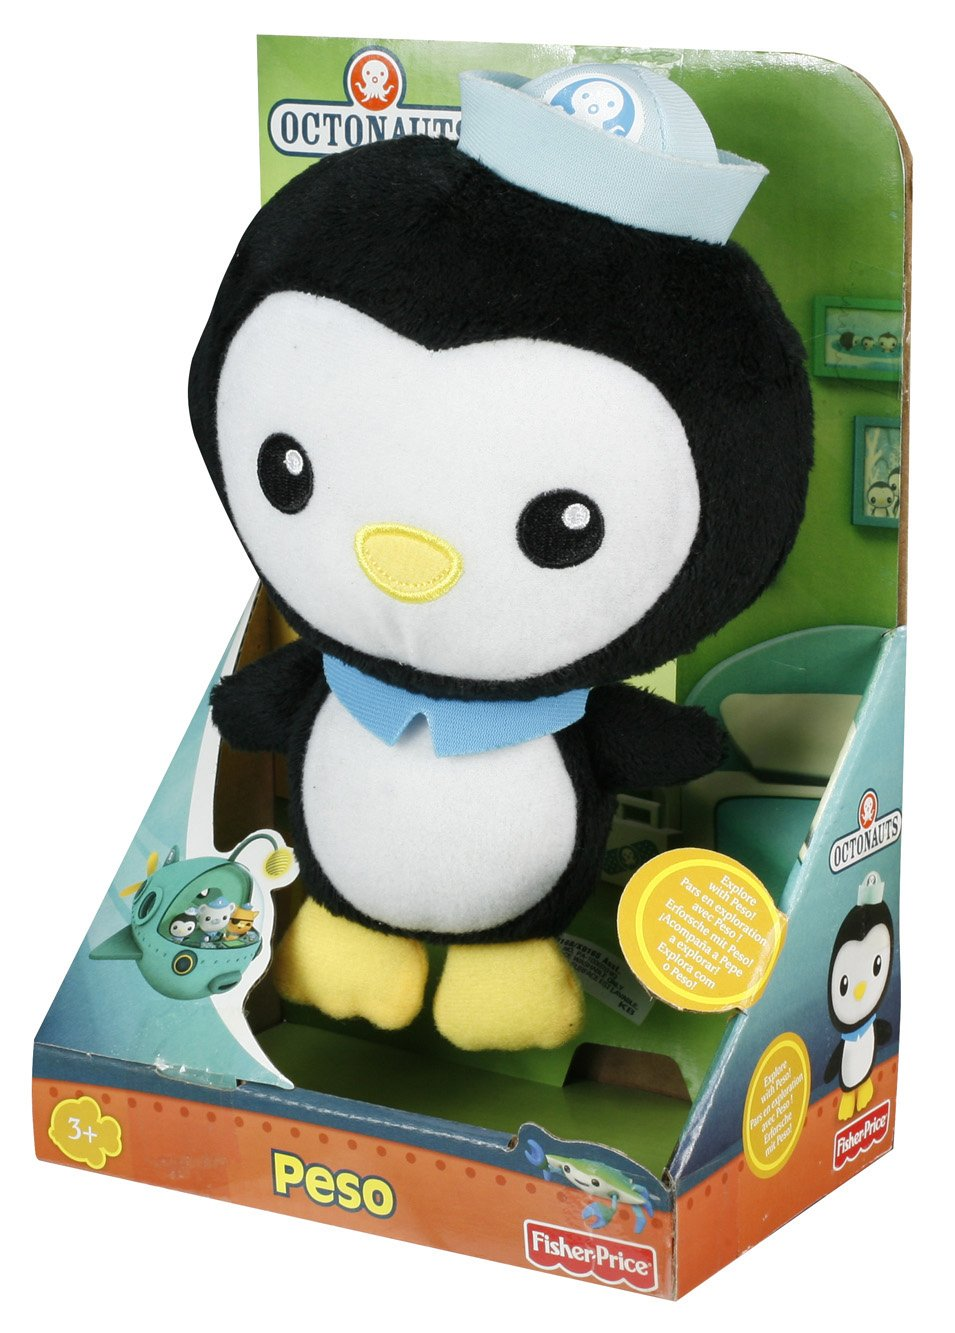 Fisher-Price Octonauts Peso Plush - 178.0KB